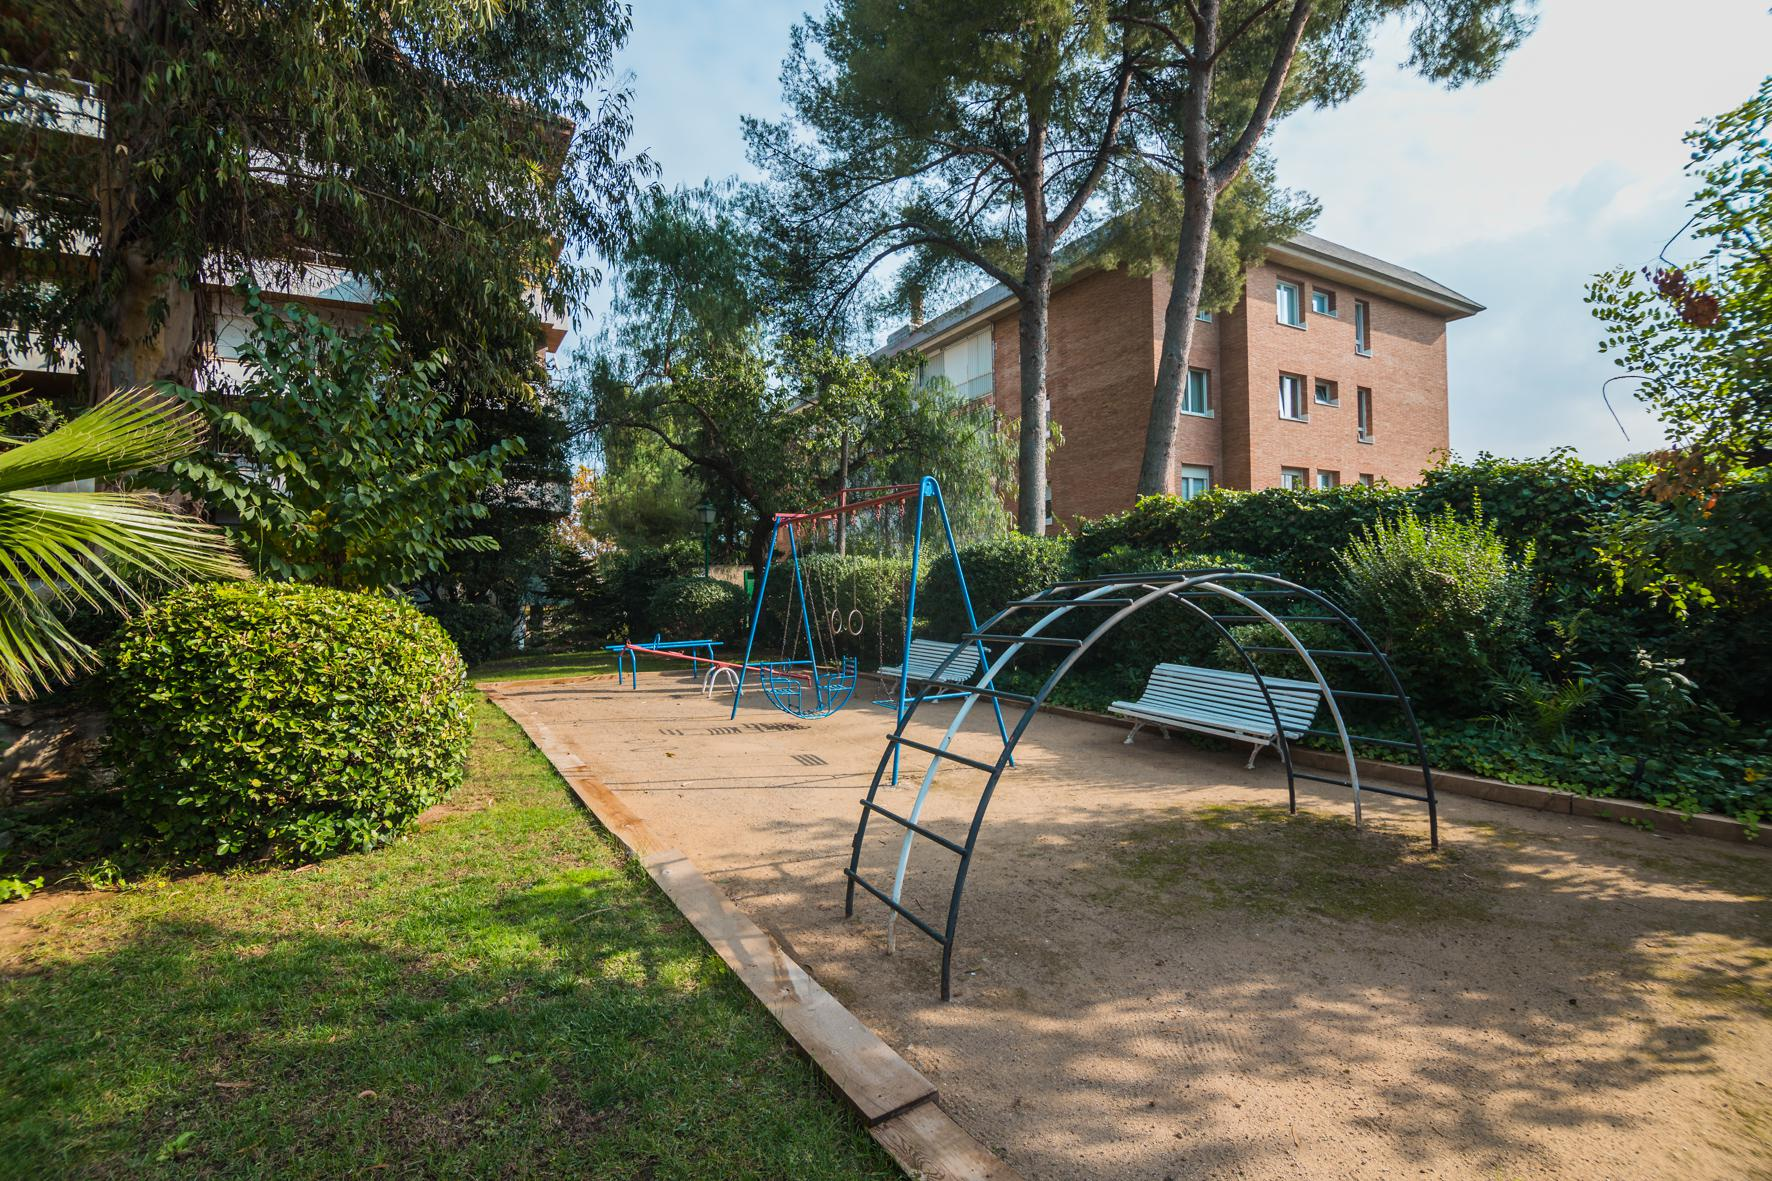 244103 Penthouse for sale in Les Corts, Pedralbes 27